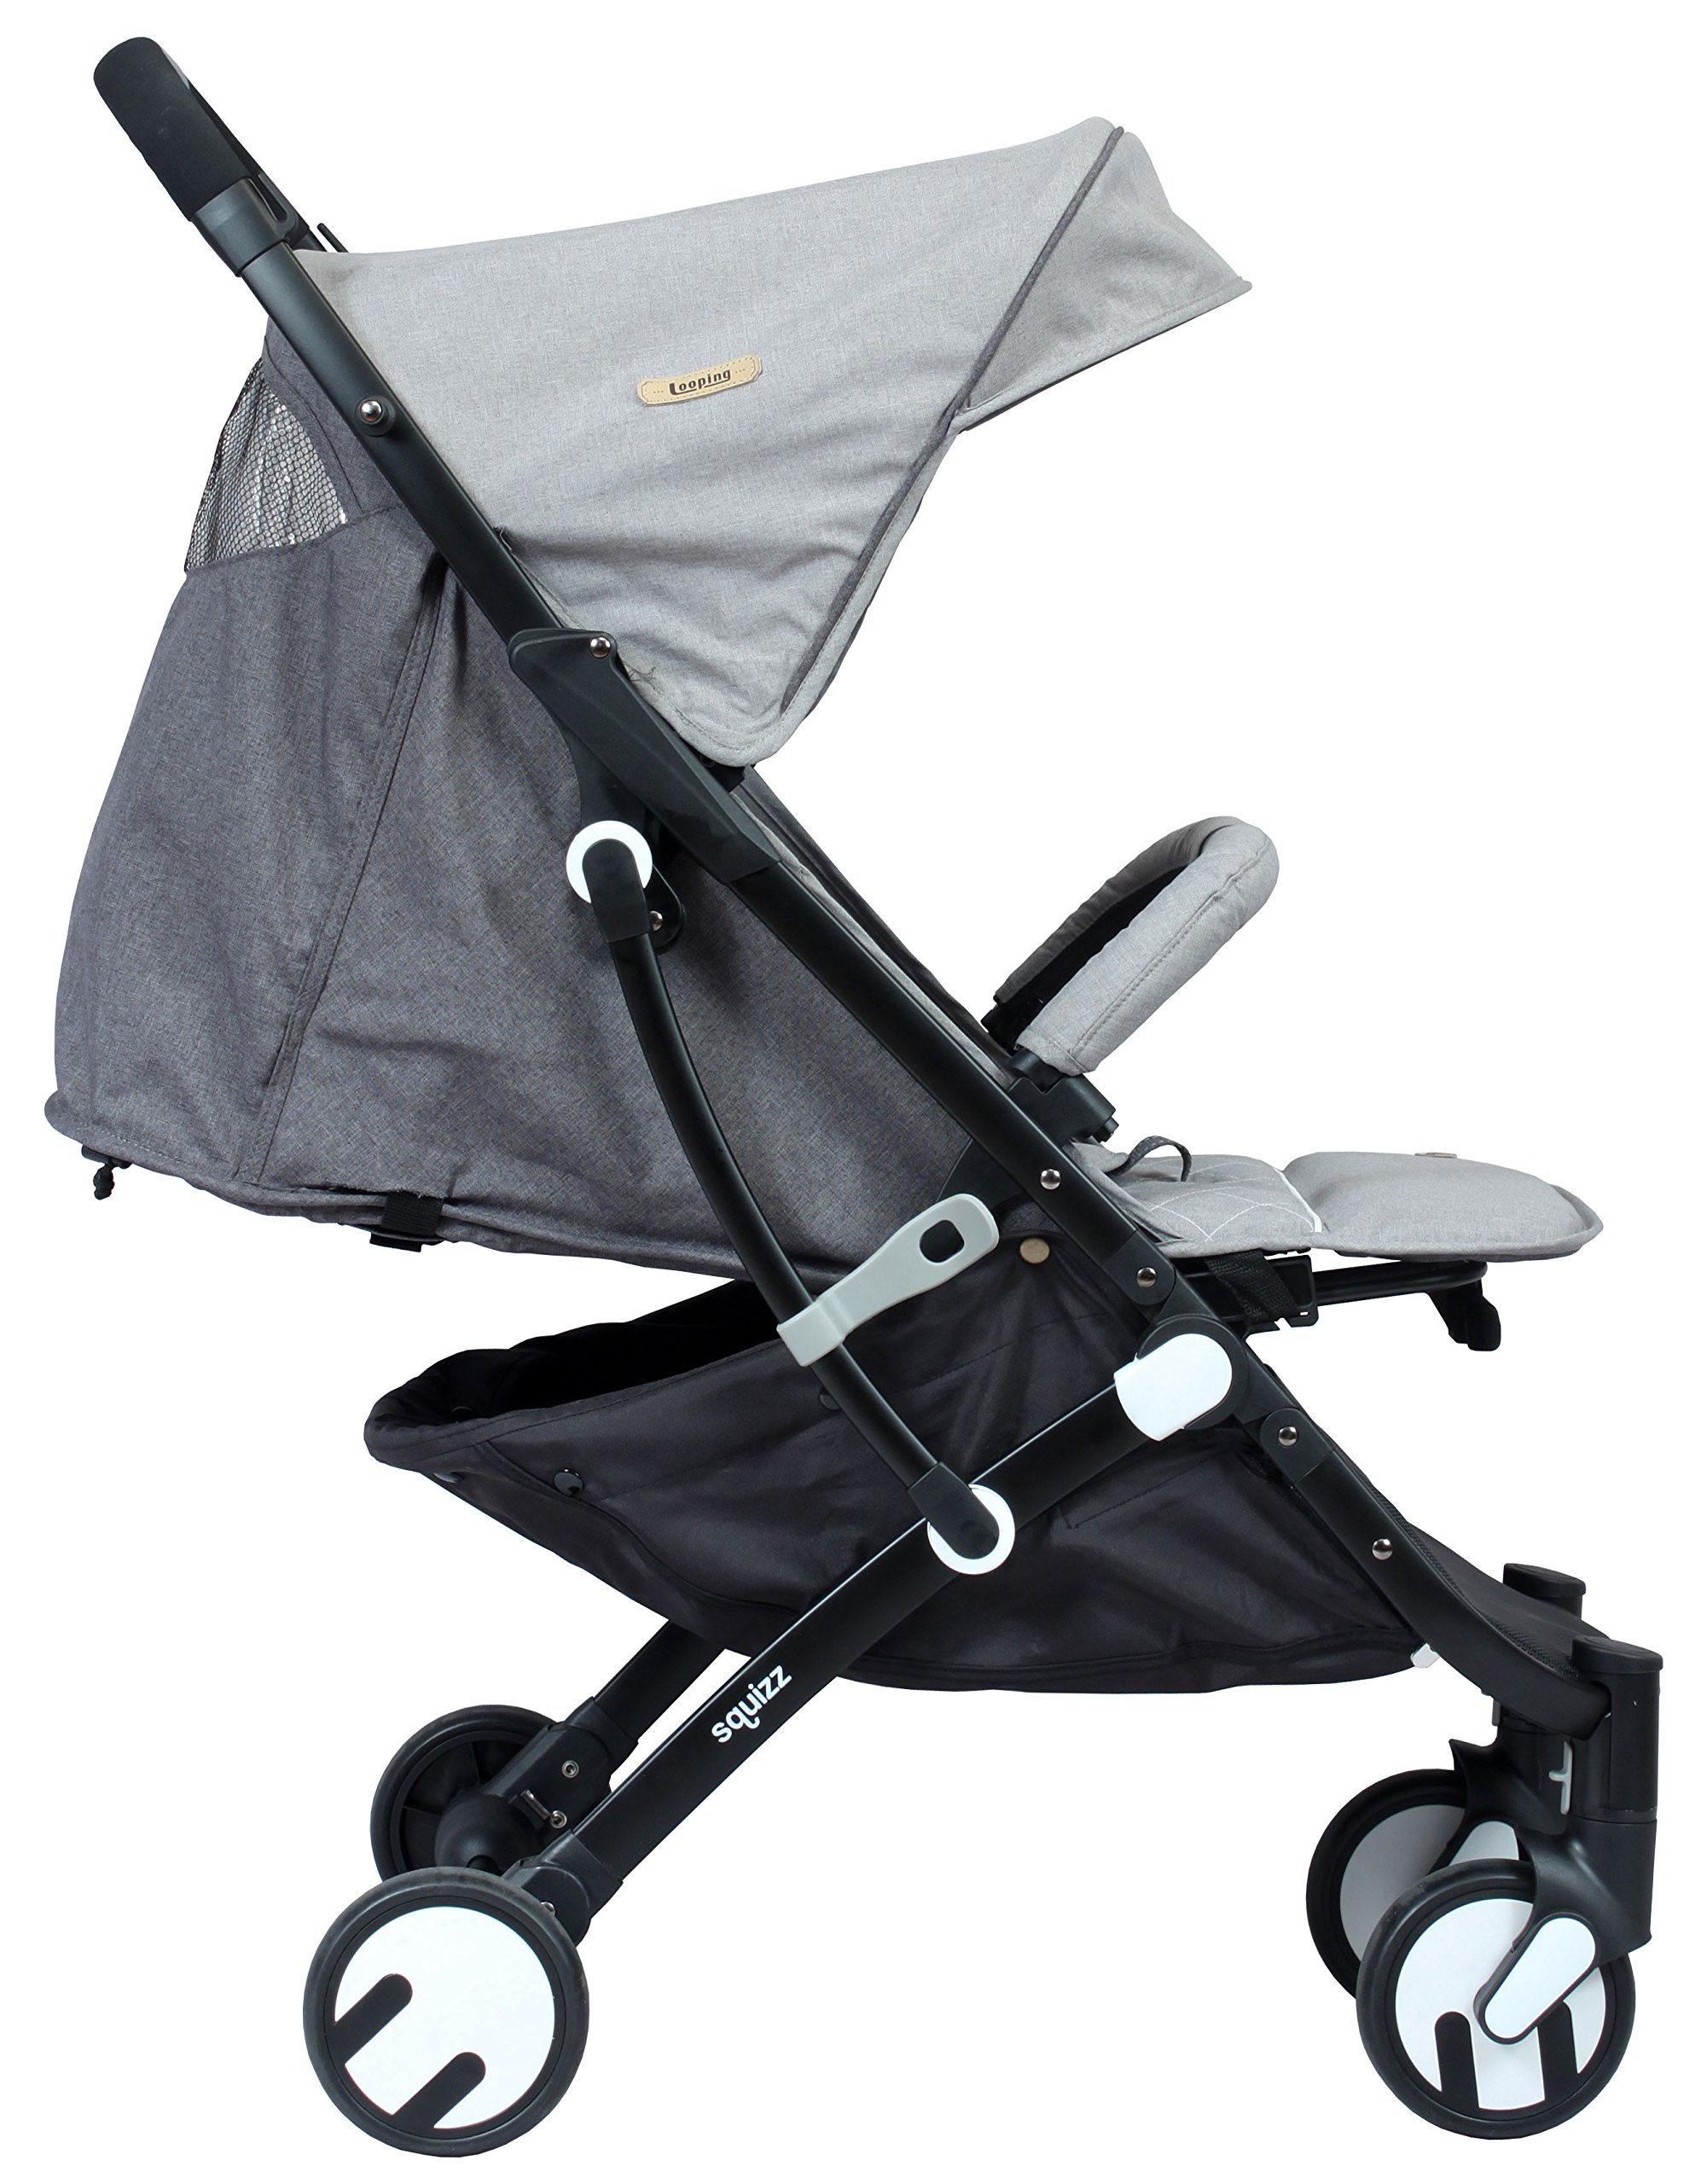 LOOPING Poussette compacte Squizz 2 Z15 - Gris chiné Looping Very compact babies's pushchair from birth up to 15kg. Smart pull-along handle that enables you to pull the pushchair. Folds up and unfolds with one hand. Large canopy to better protect your baby- Removable and opening bumper bar to keep your baby in place. 6